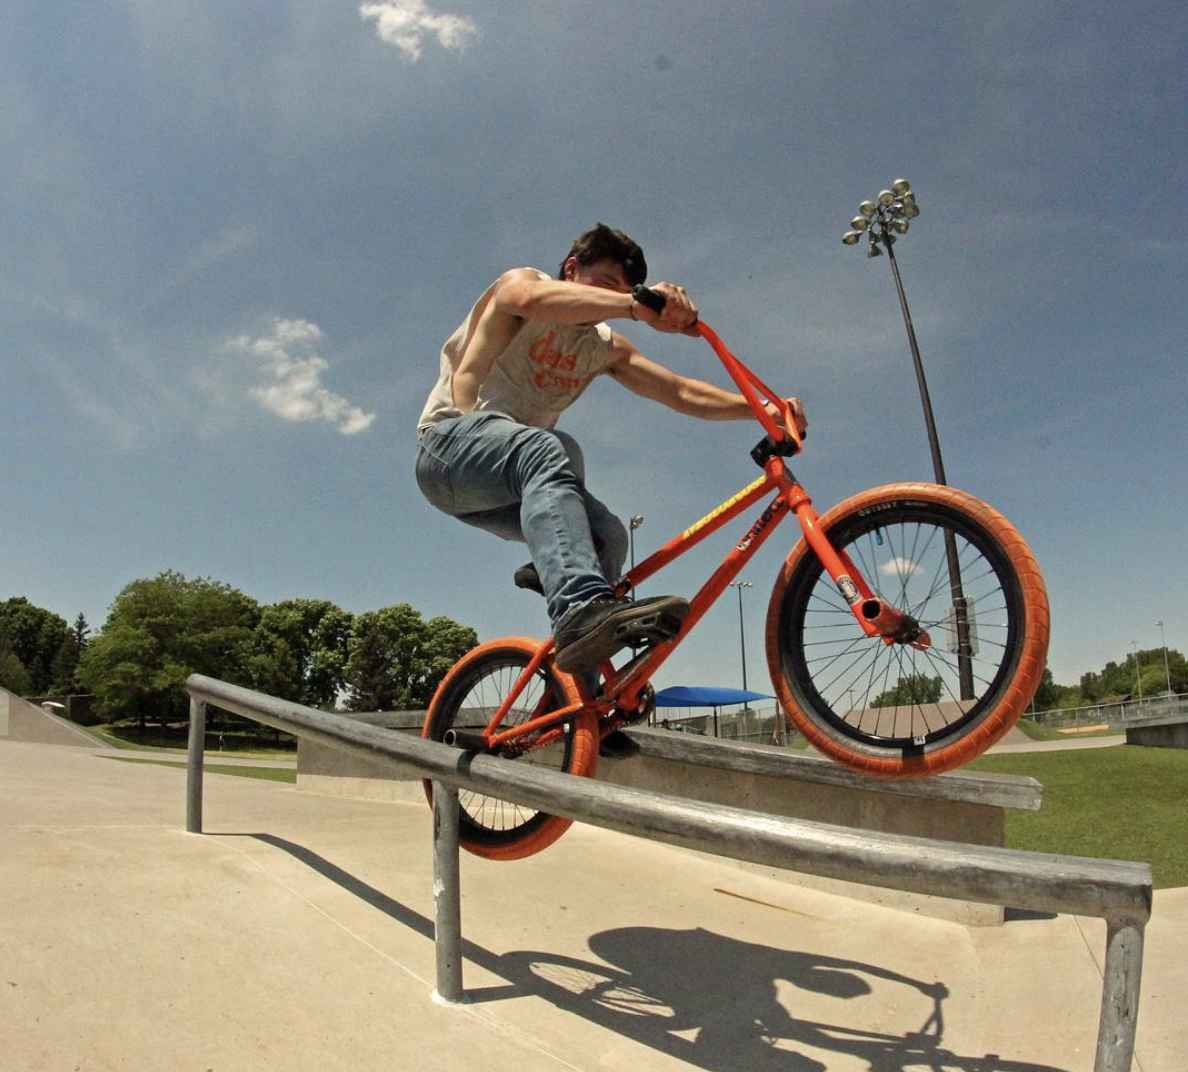 Person riding an orange BMX bike balances on the right rear axle peg down a steel rail at a rec park on a sunny day